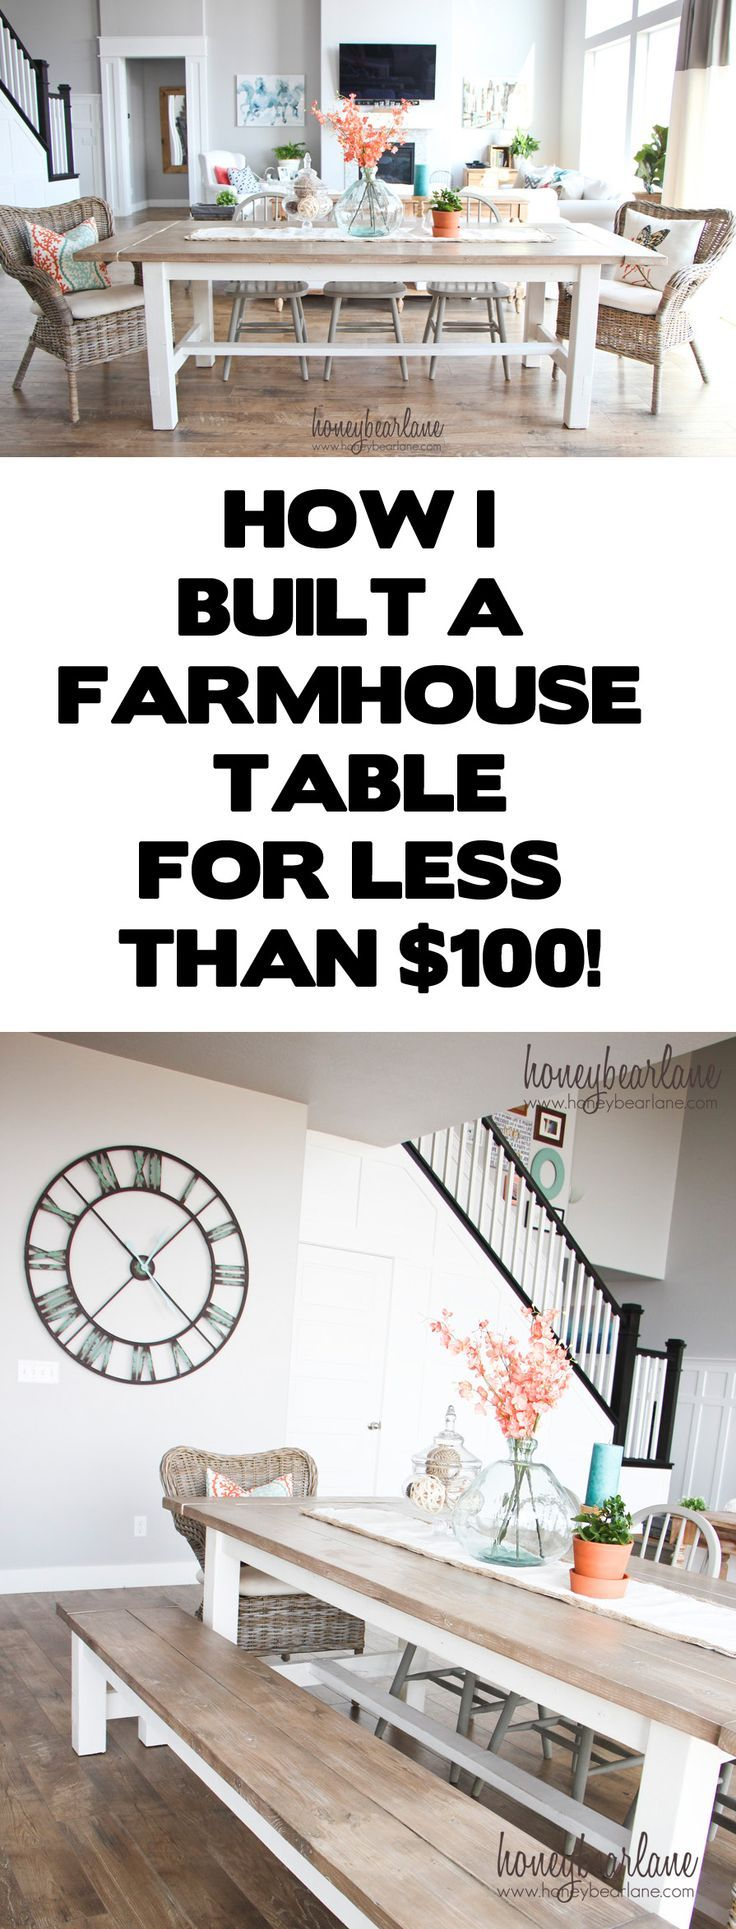 how I built a farmhouse table for less than $100